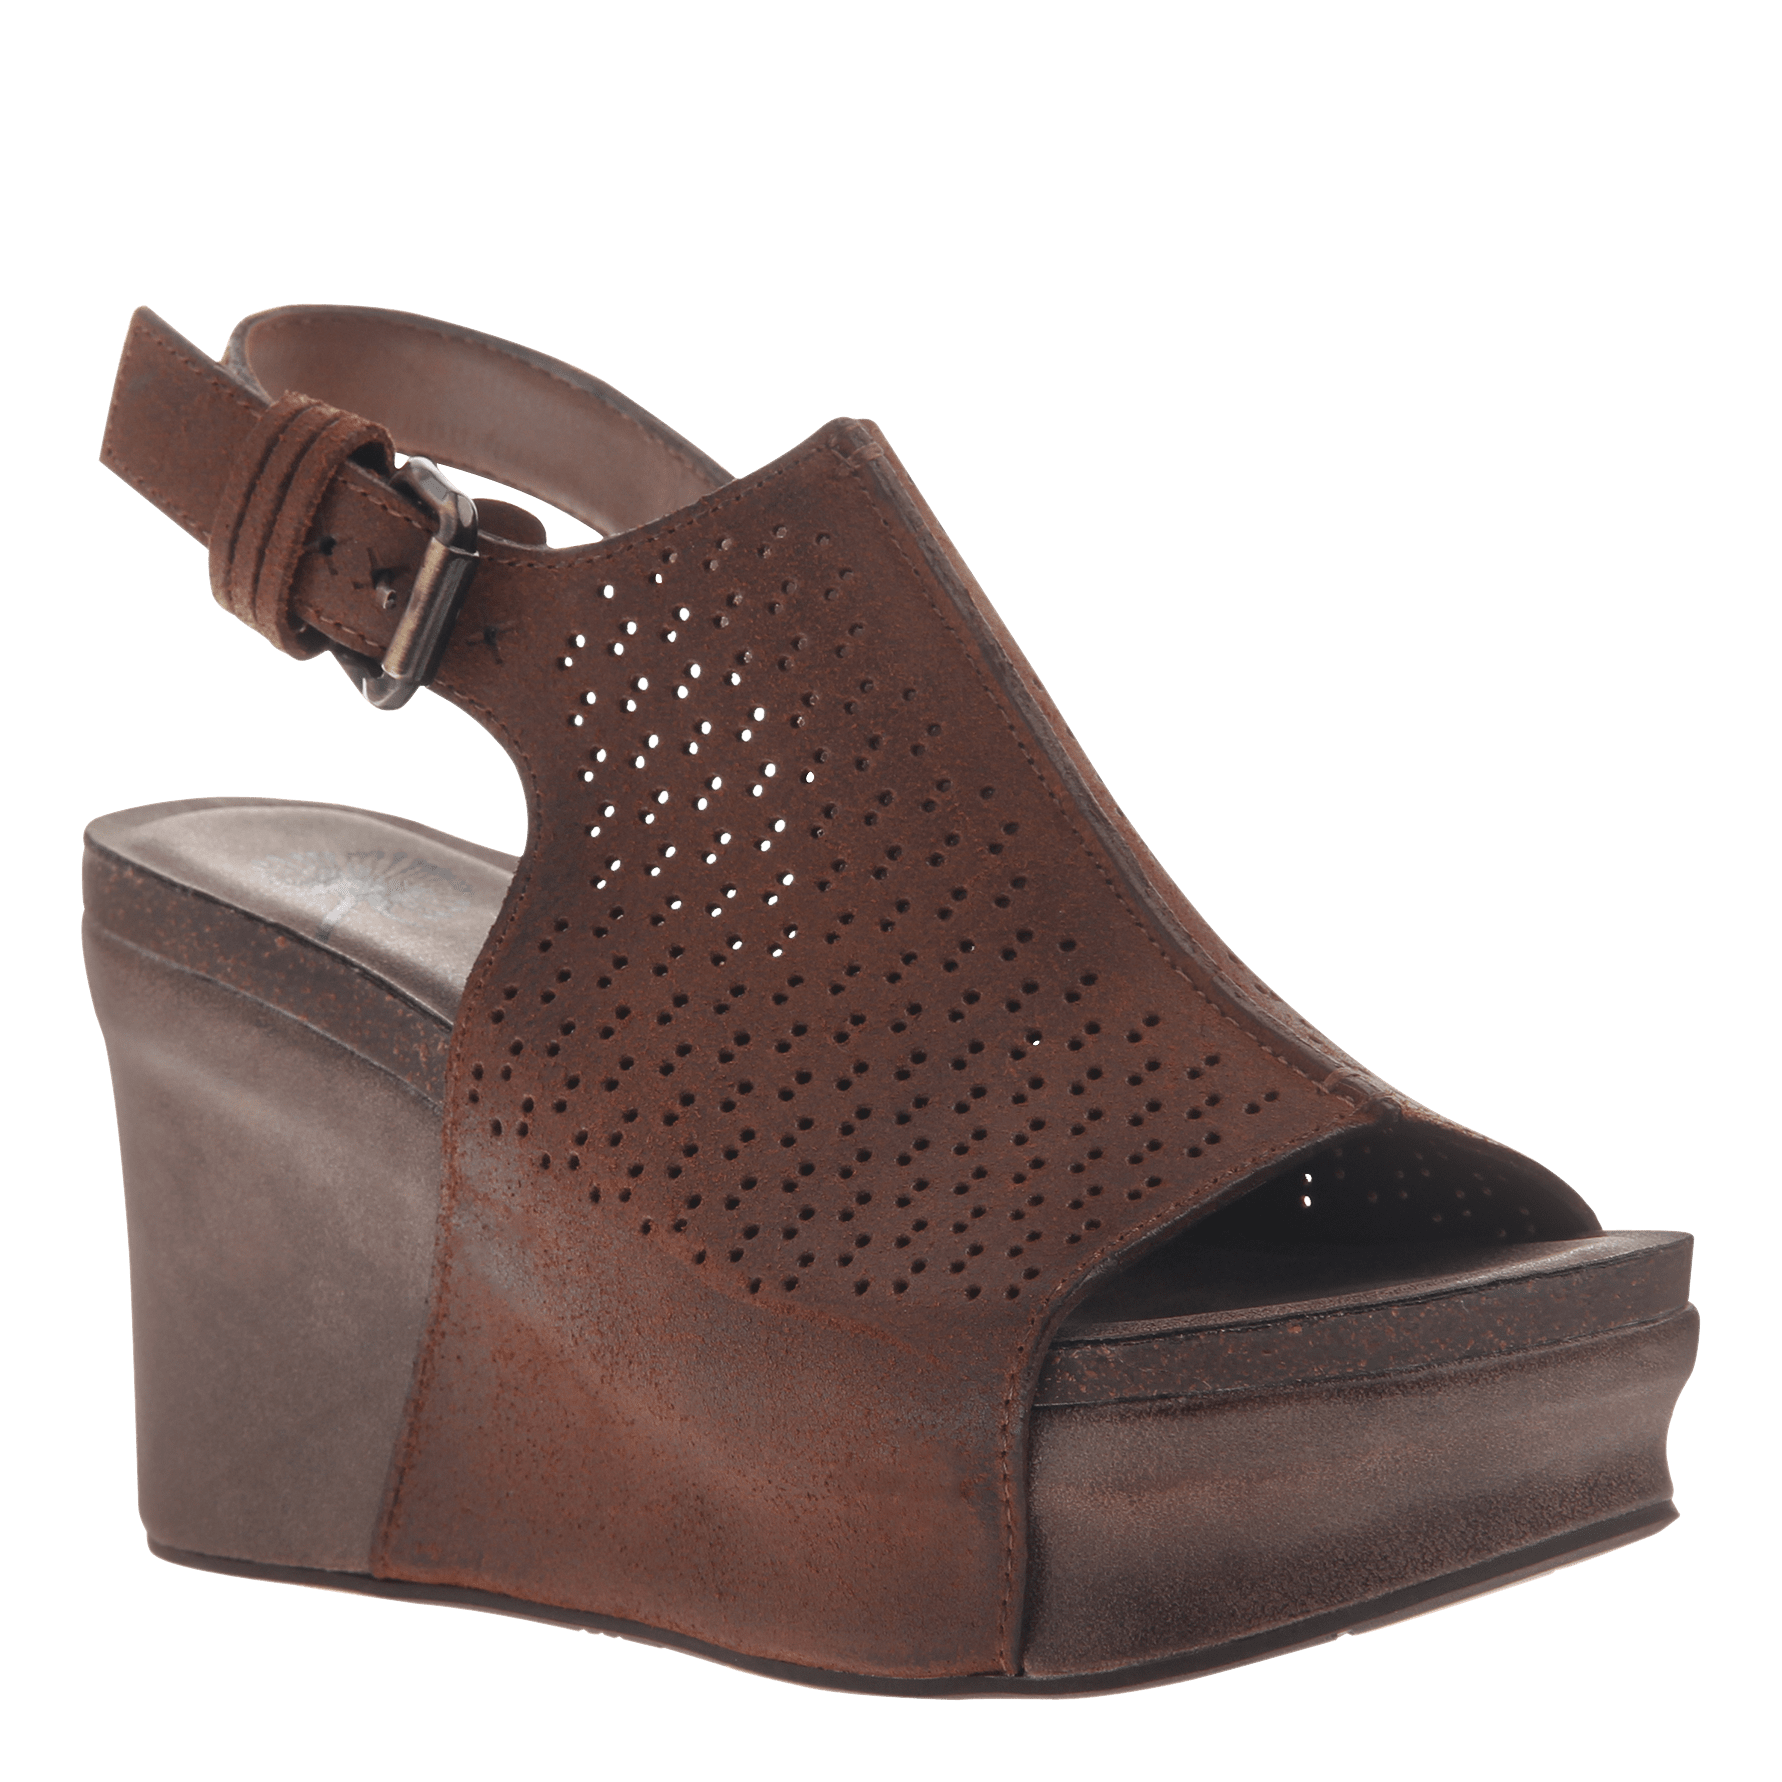 Womens platform wedge jaunt in new tan